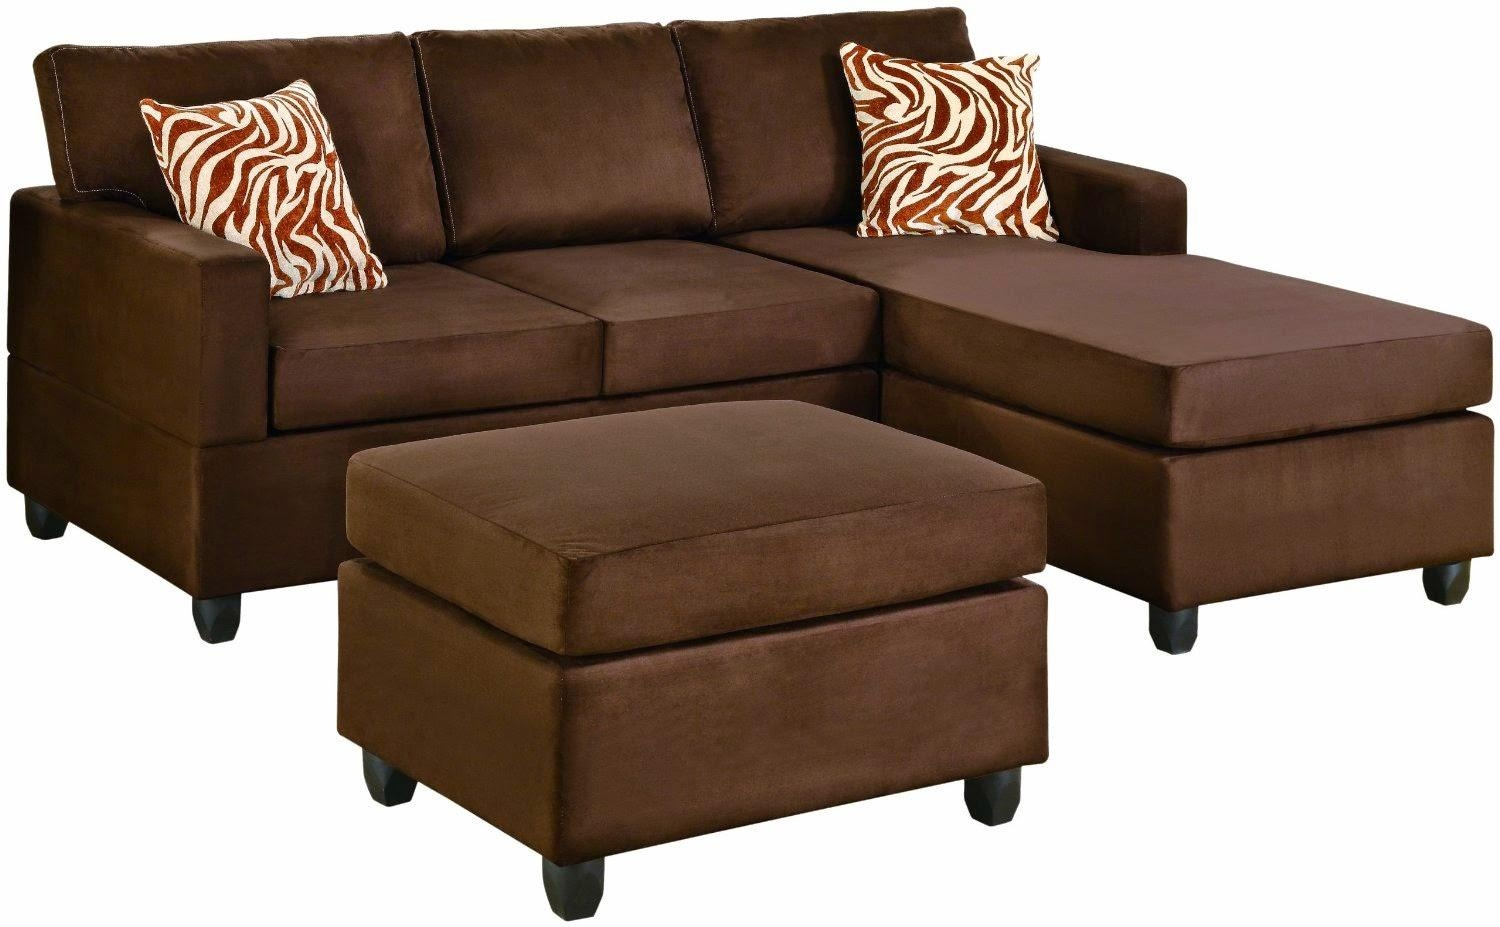 Furniture: Lovely Brown Microfiber Couch With Superb Color For Microsuede Sleeper Sofas (Image 6 of 20)